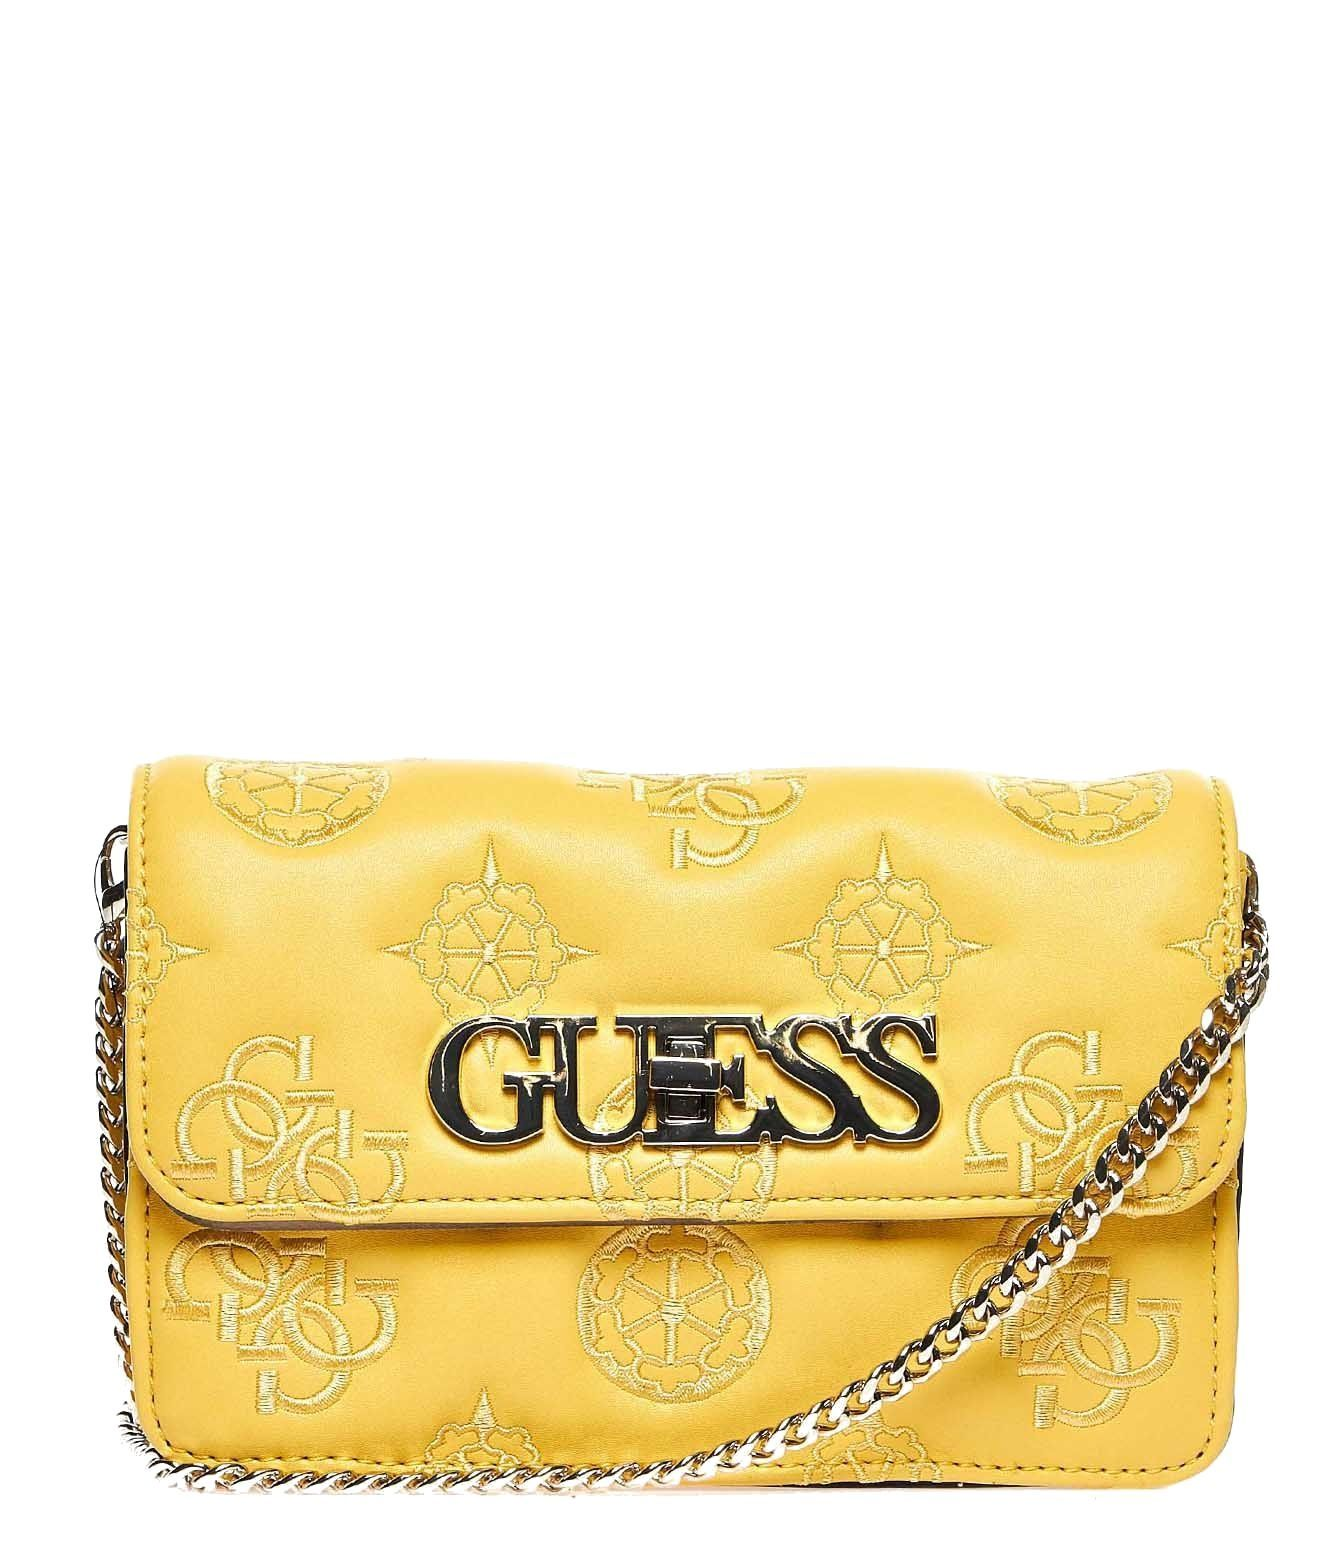 GUESS WOMEN'S HWSG7589800YELLOW YELLOW LEATHER SHOULDER BAG